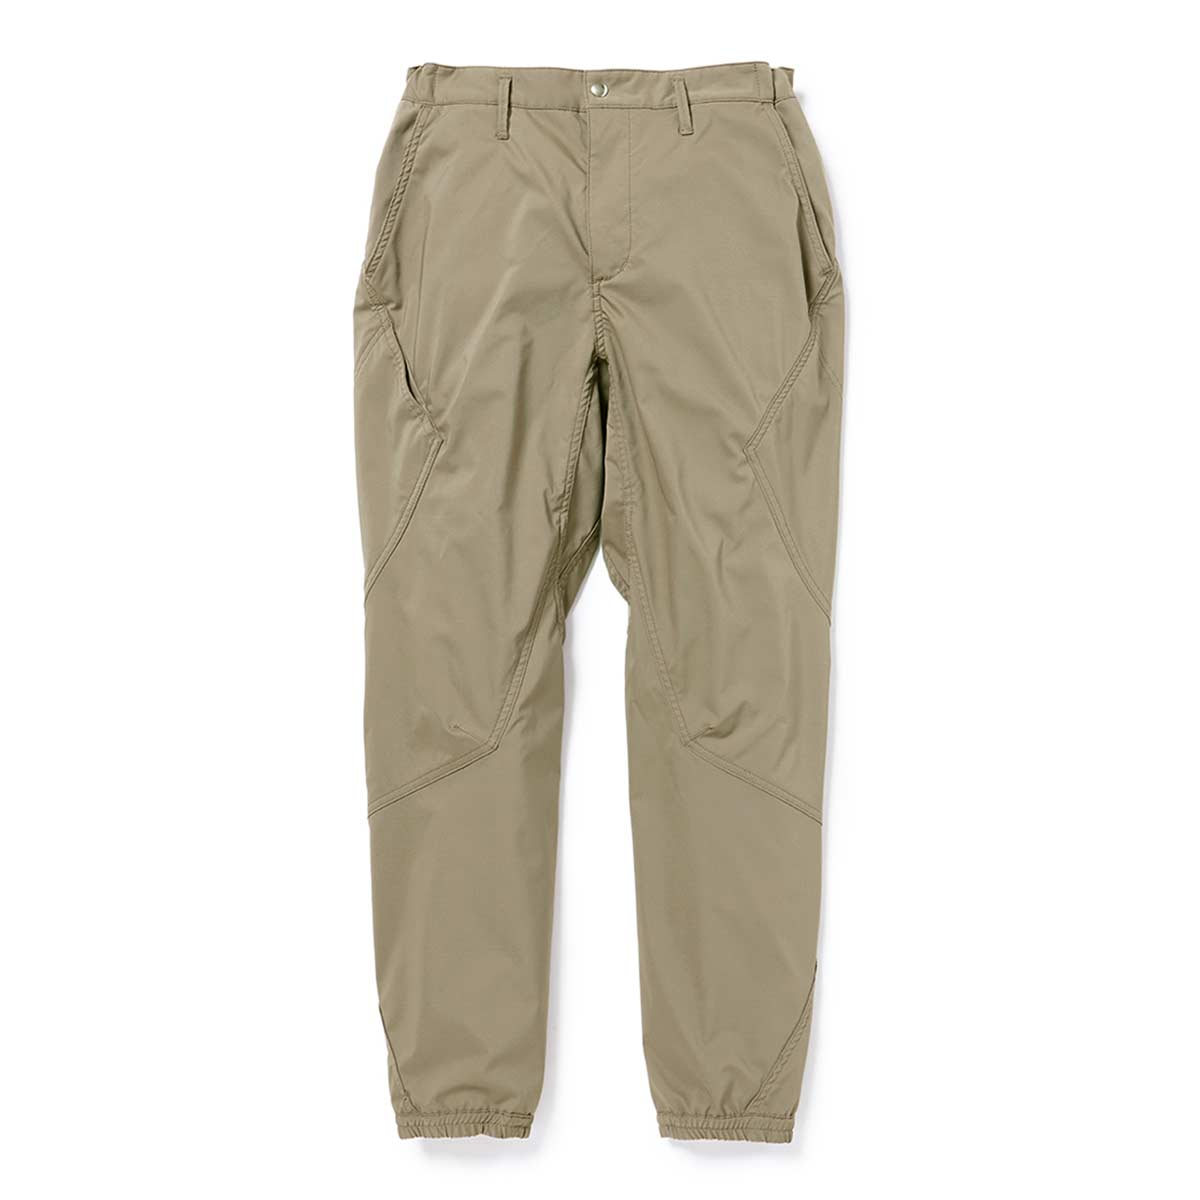 nonnative / CYCLIST EASY RIB PANTS TAPERED FIT POLY TWILL Pliantex -BEIGE